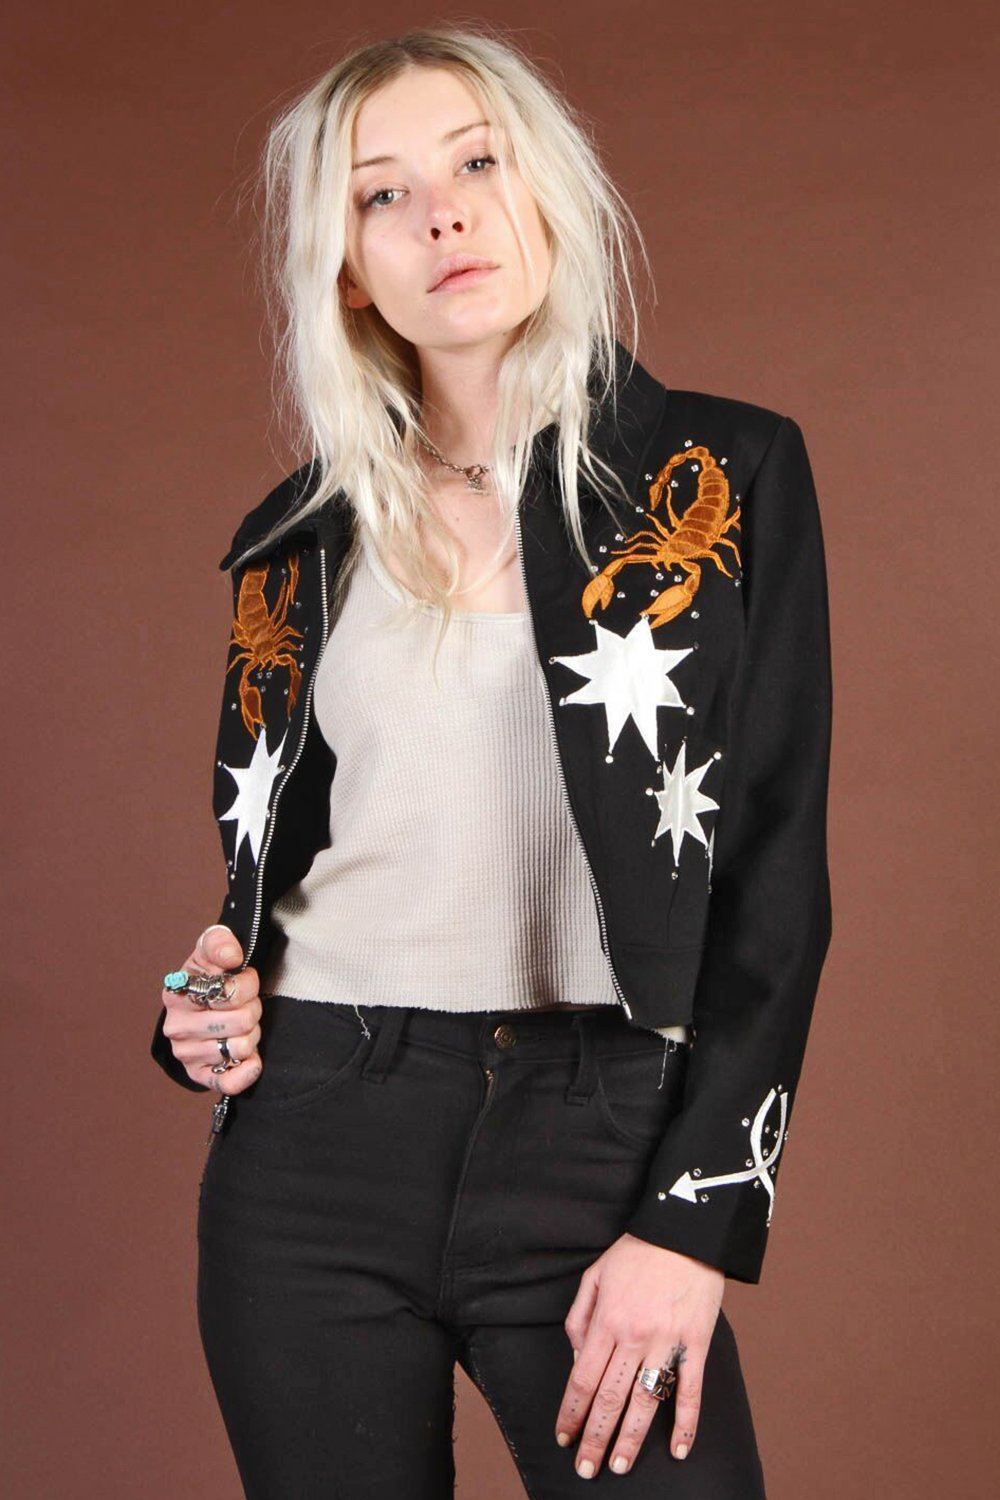 The Scorpion Black Denim Jacket Handcrafted by Rose Cut Clothing, Outerwear, Rusty Cuts, BACKBITE